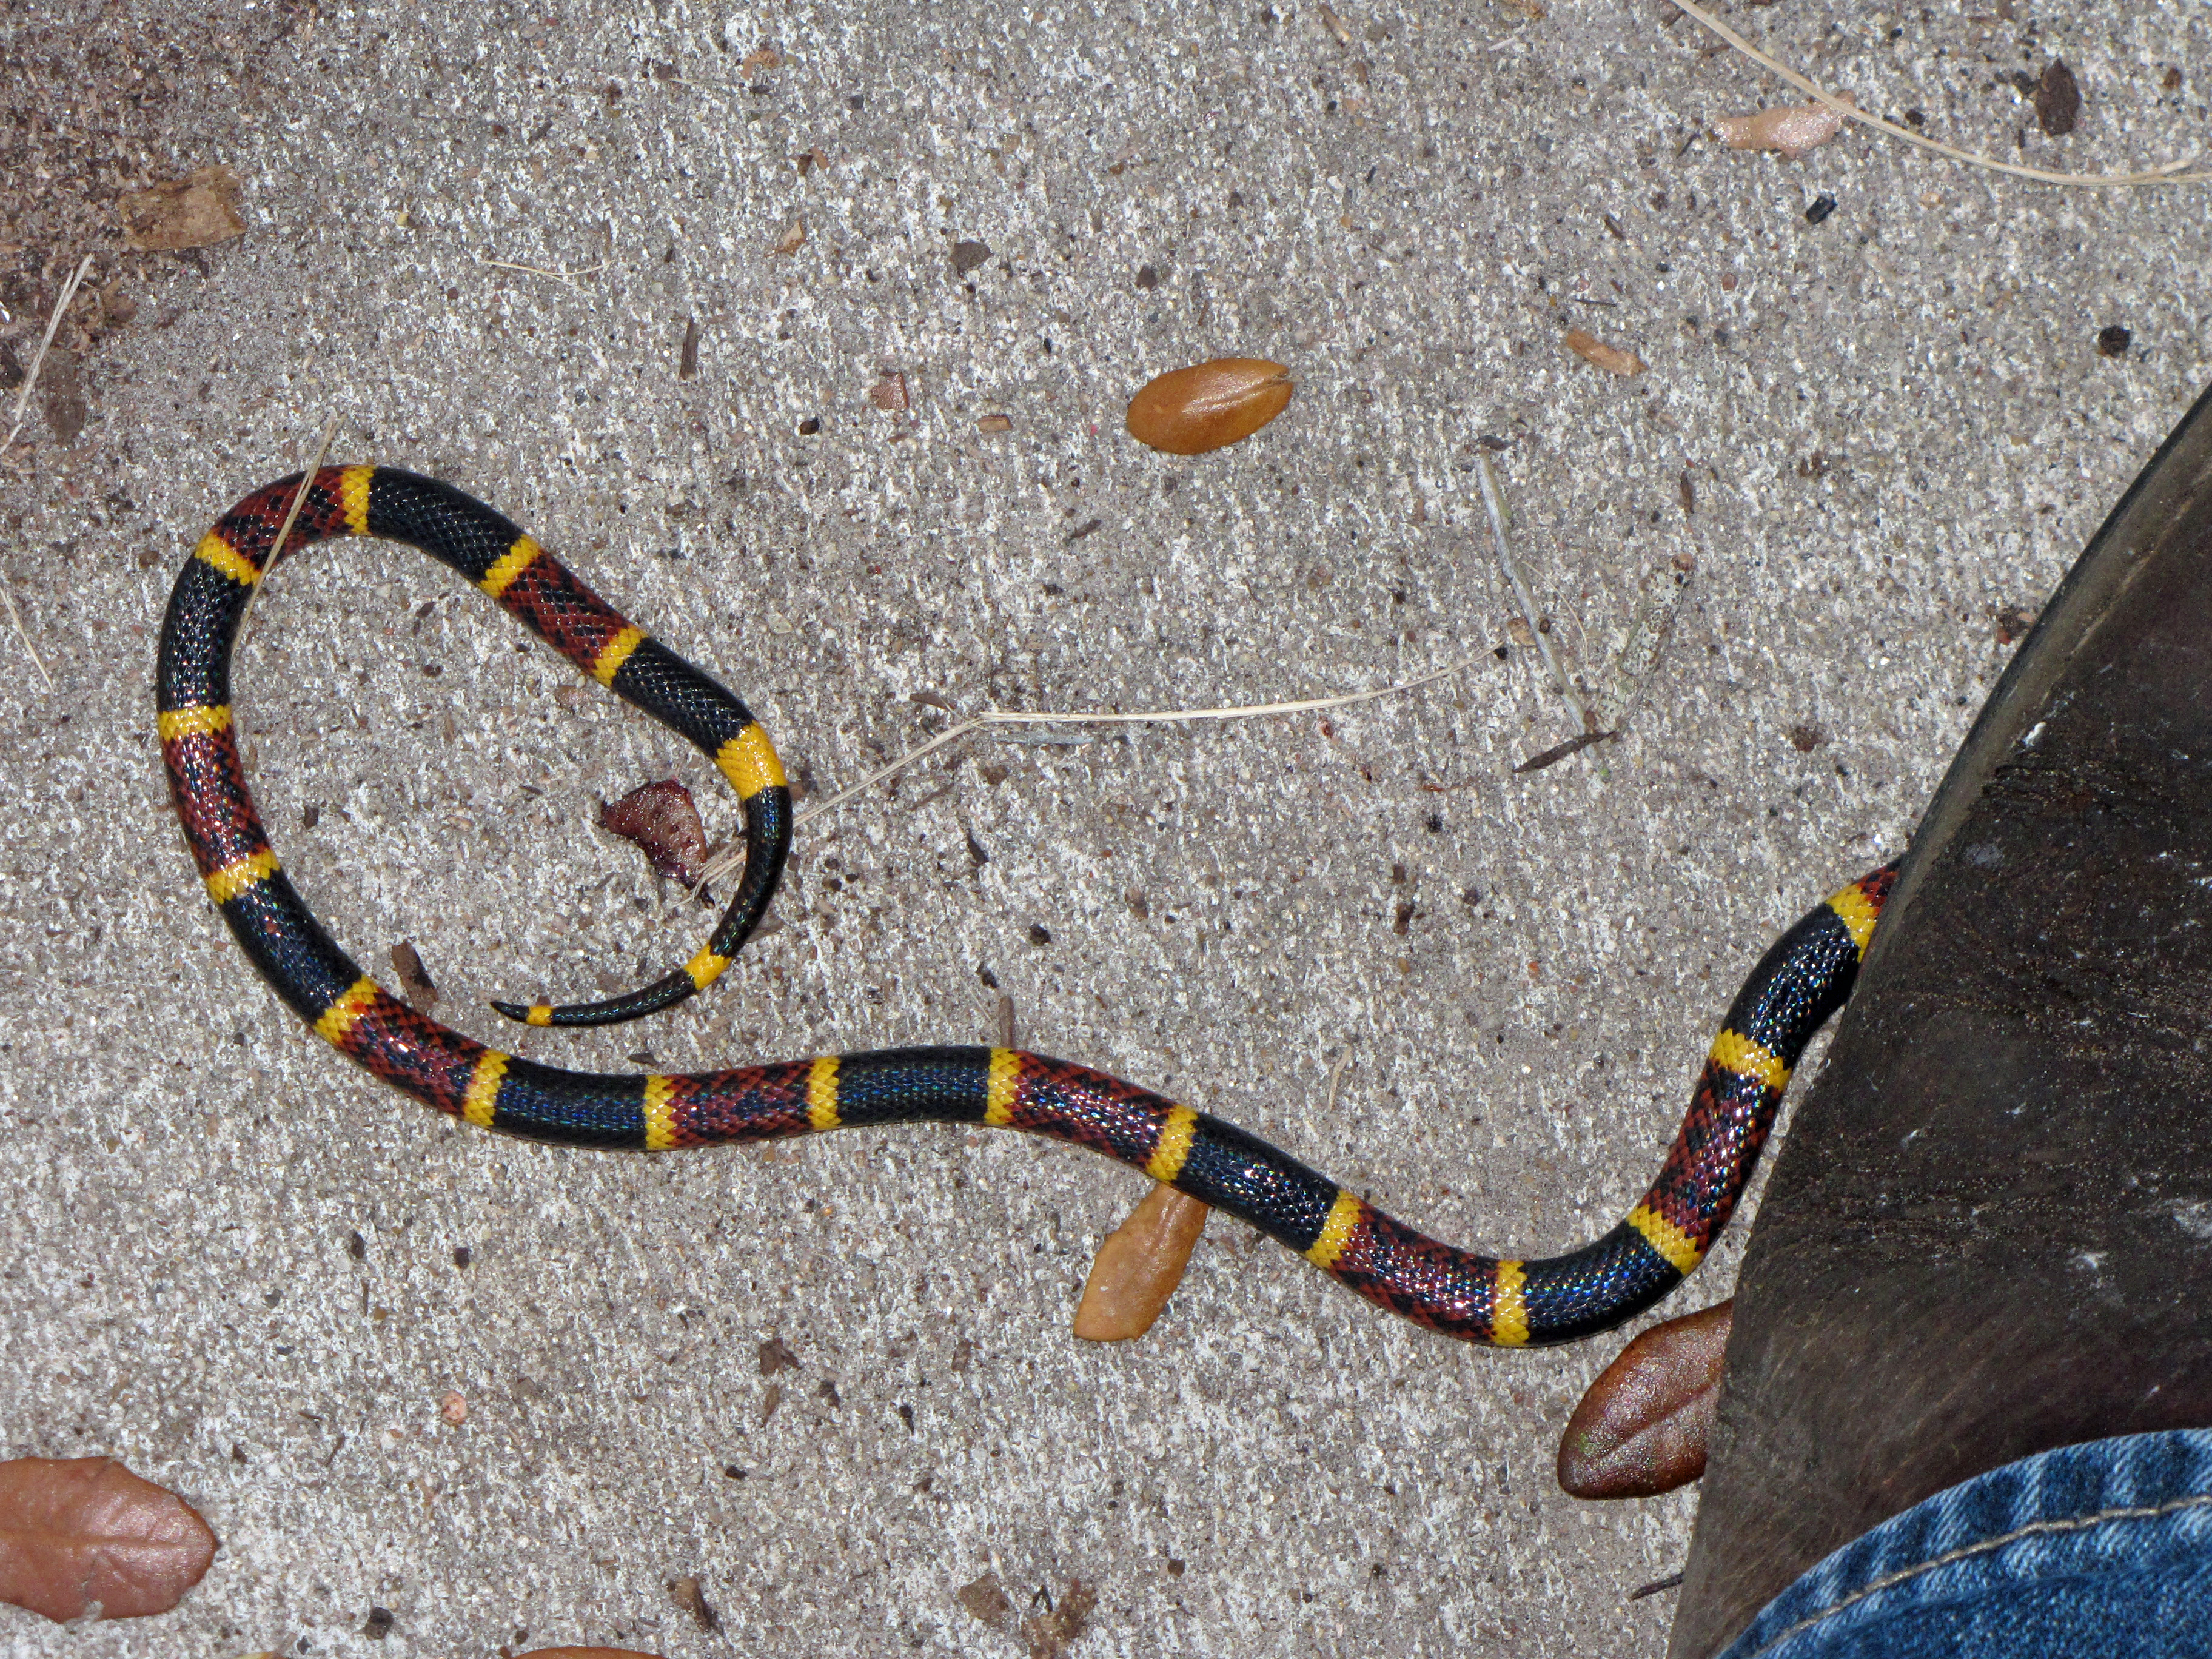 how to tell difference between black snake and king snake